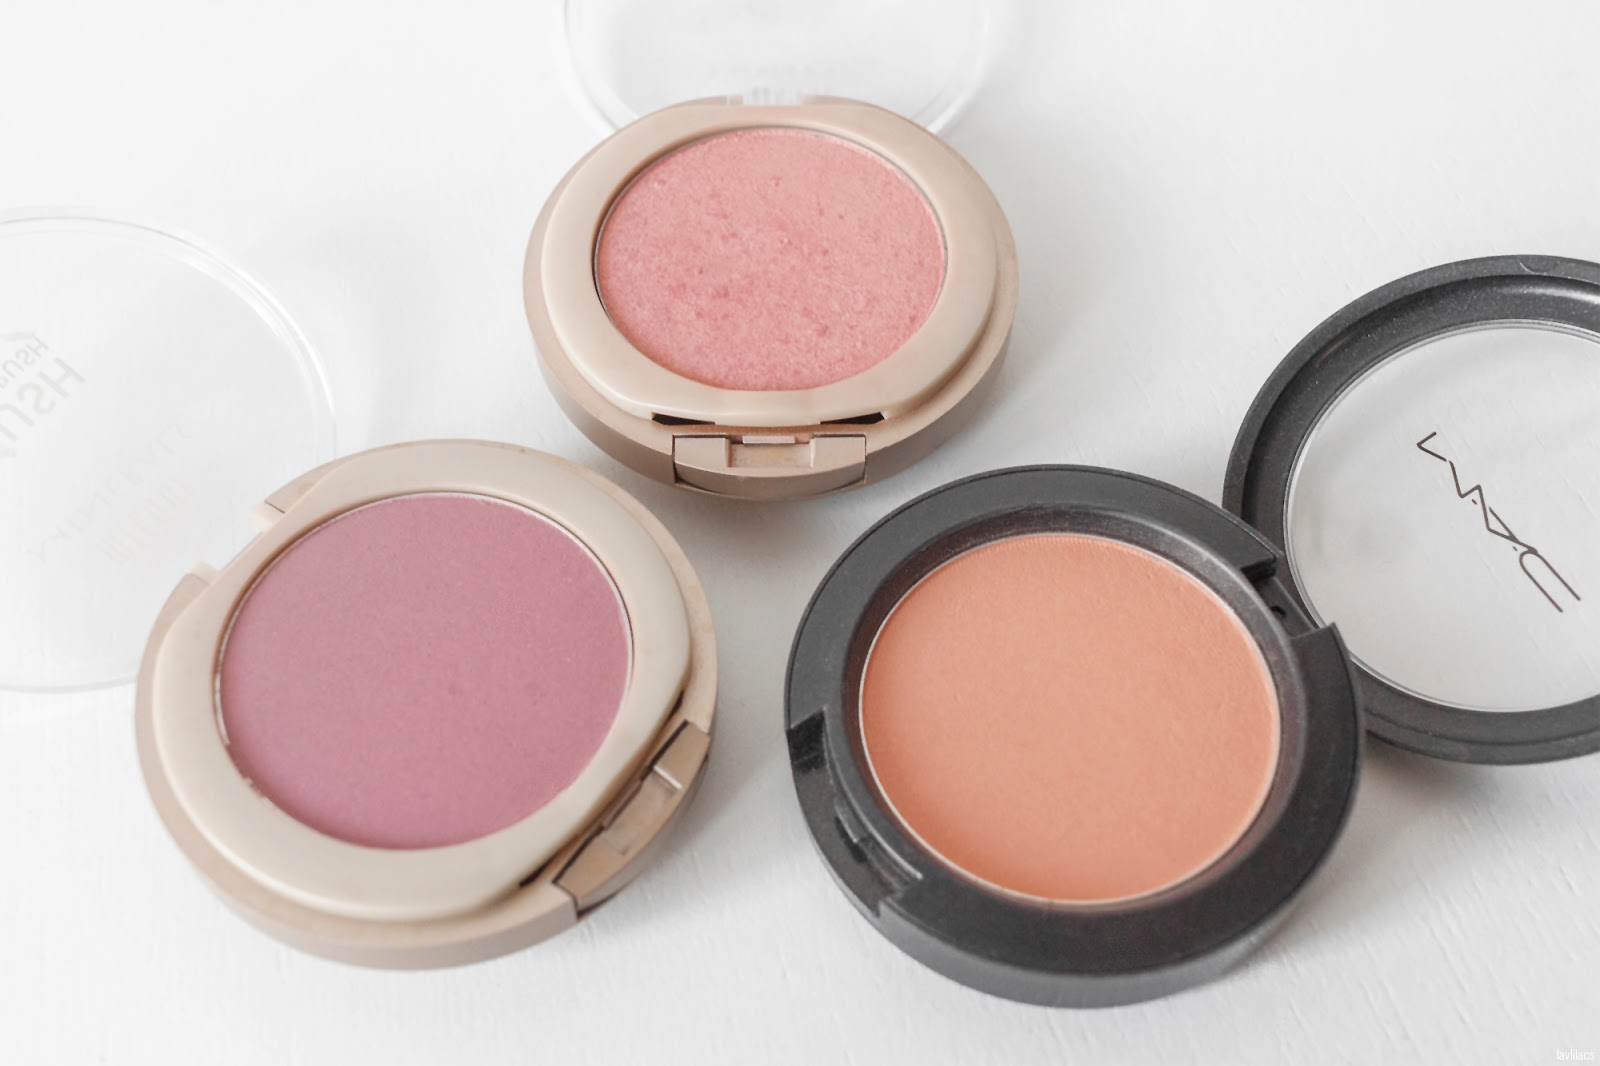 lavlilacs 2018 Project Make a Dent - beginning - Milani Minerals Blushes in Sweet Rose and Luminous, MAC Cosmetics My Highland Honey